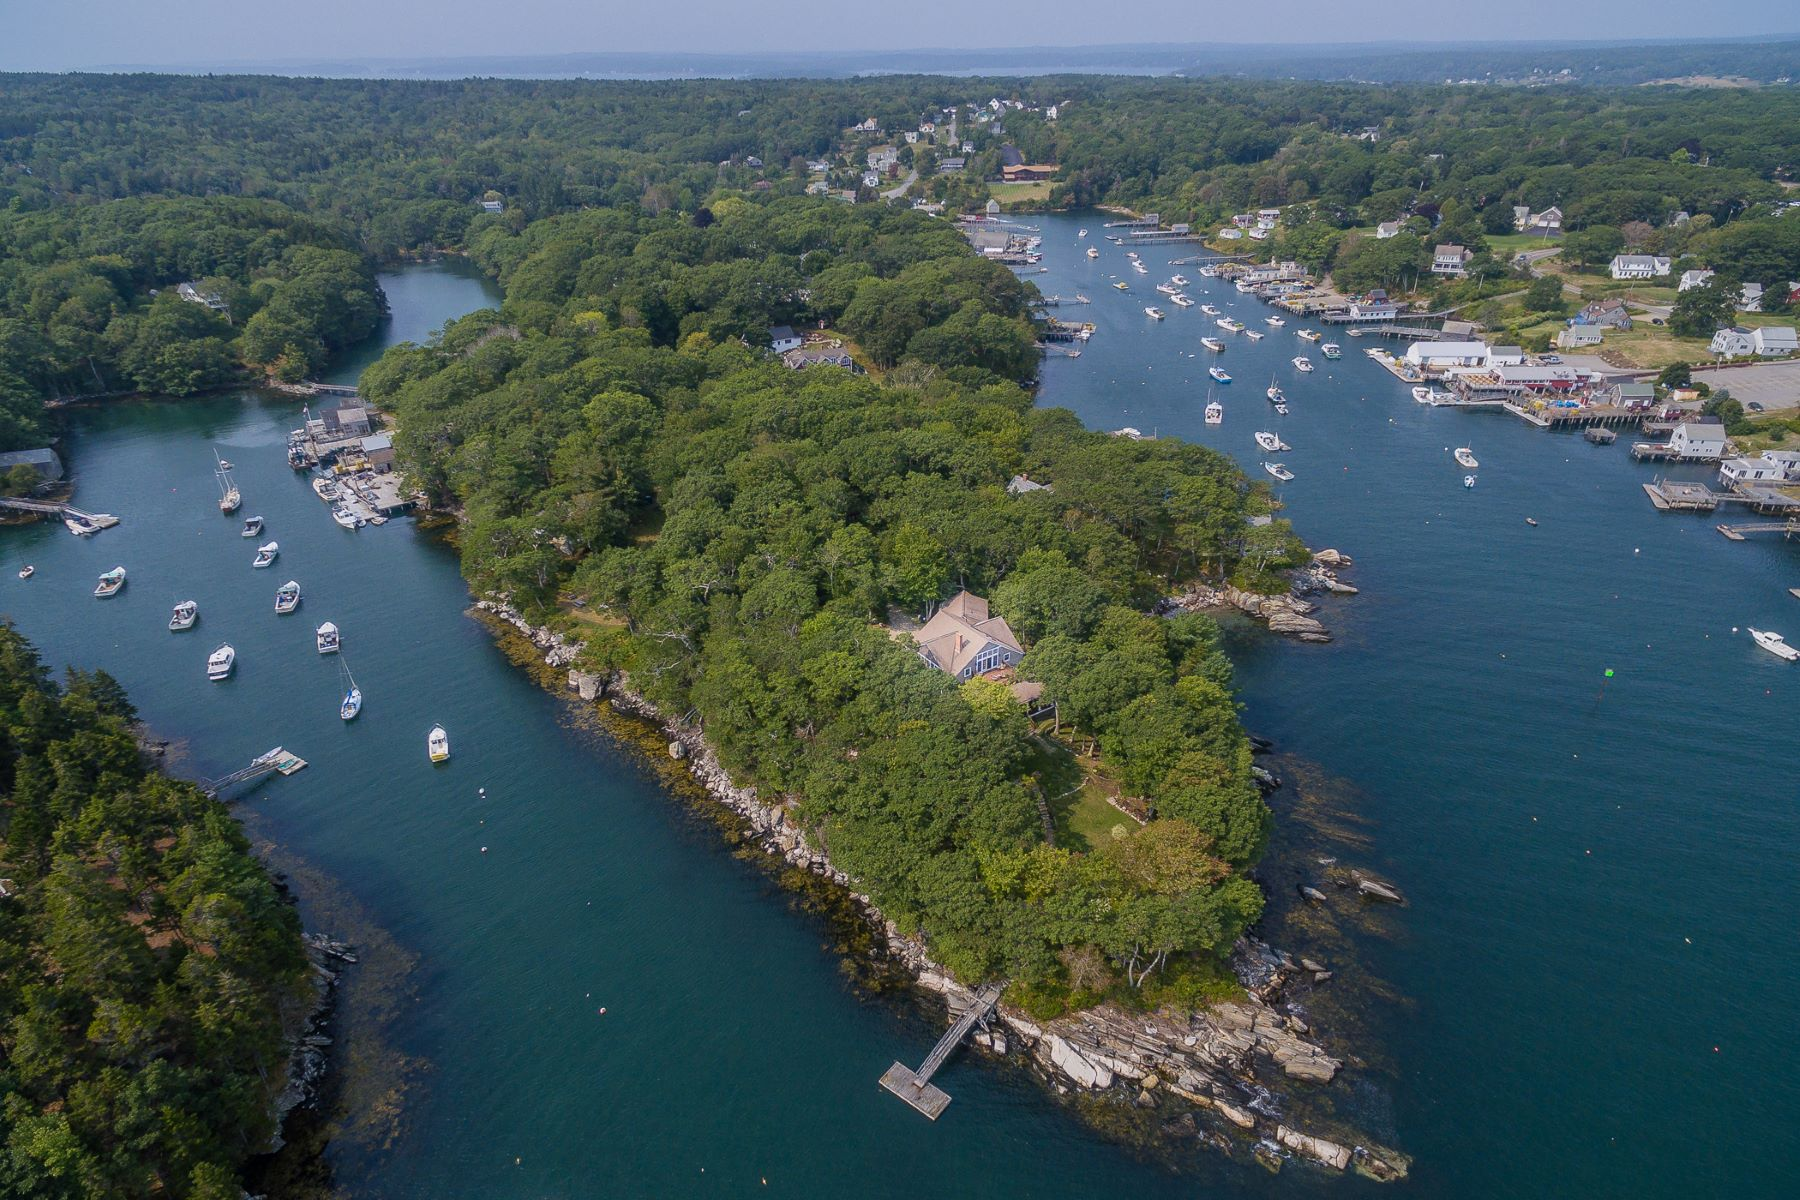 Single Family Home for Sale at 18 Harbor Point Lane 18 Harbor Point Lane Bristol, Maine 04554 United States